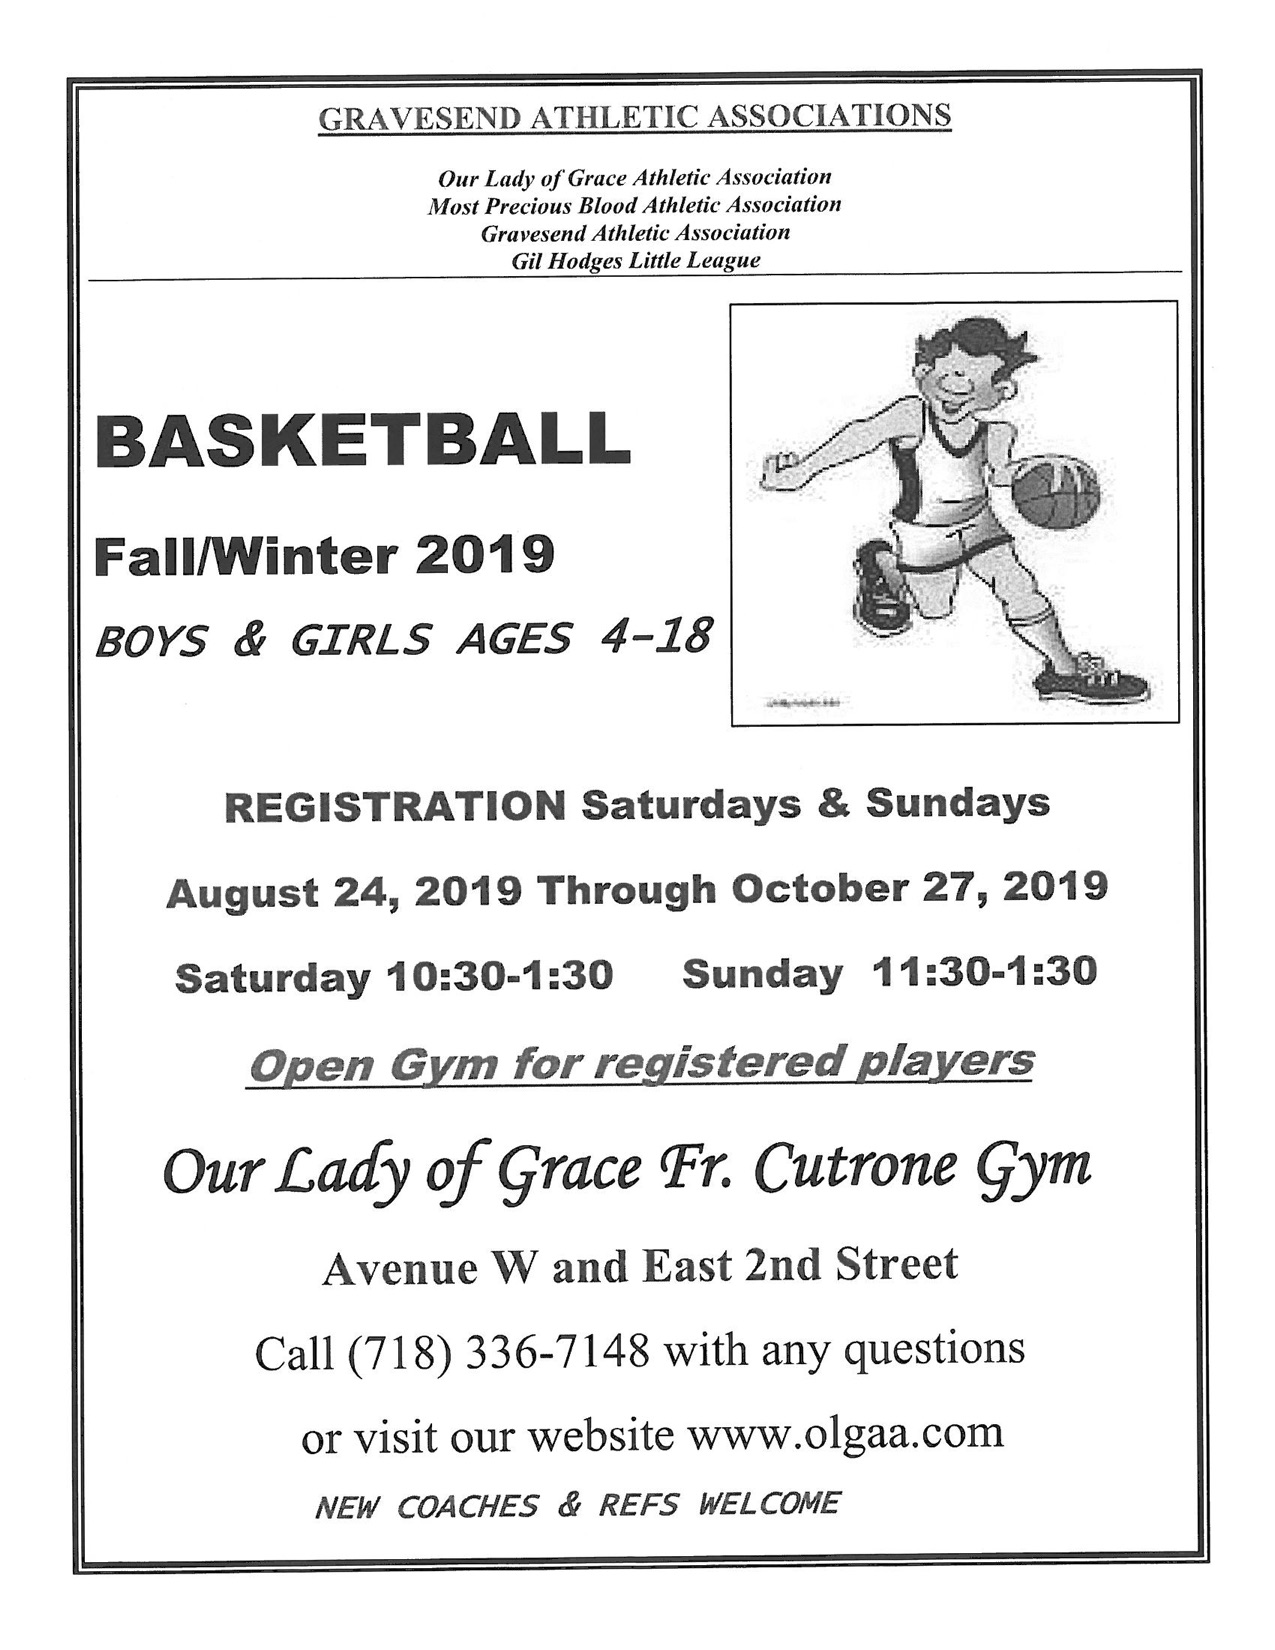 basketball registration information